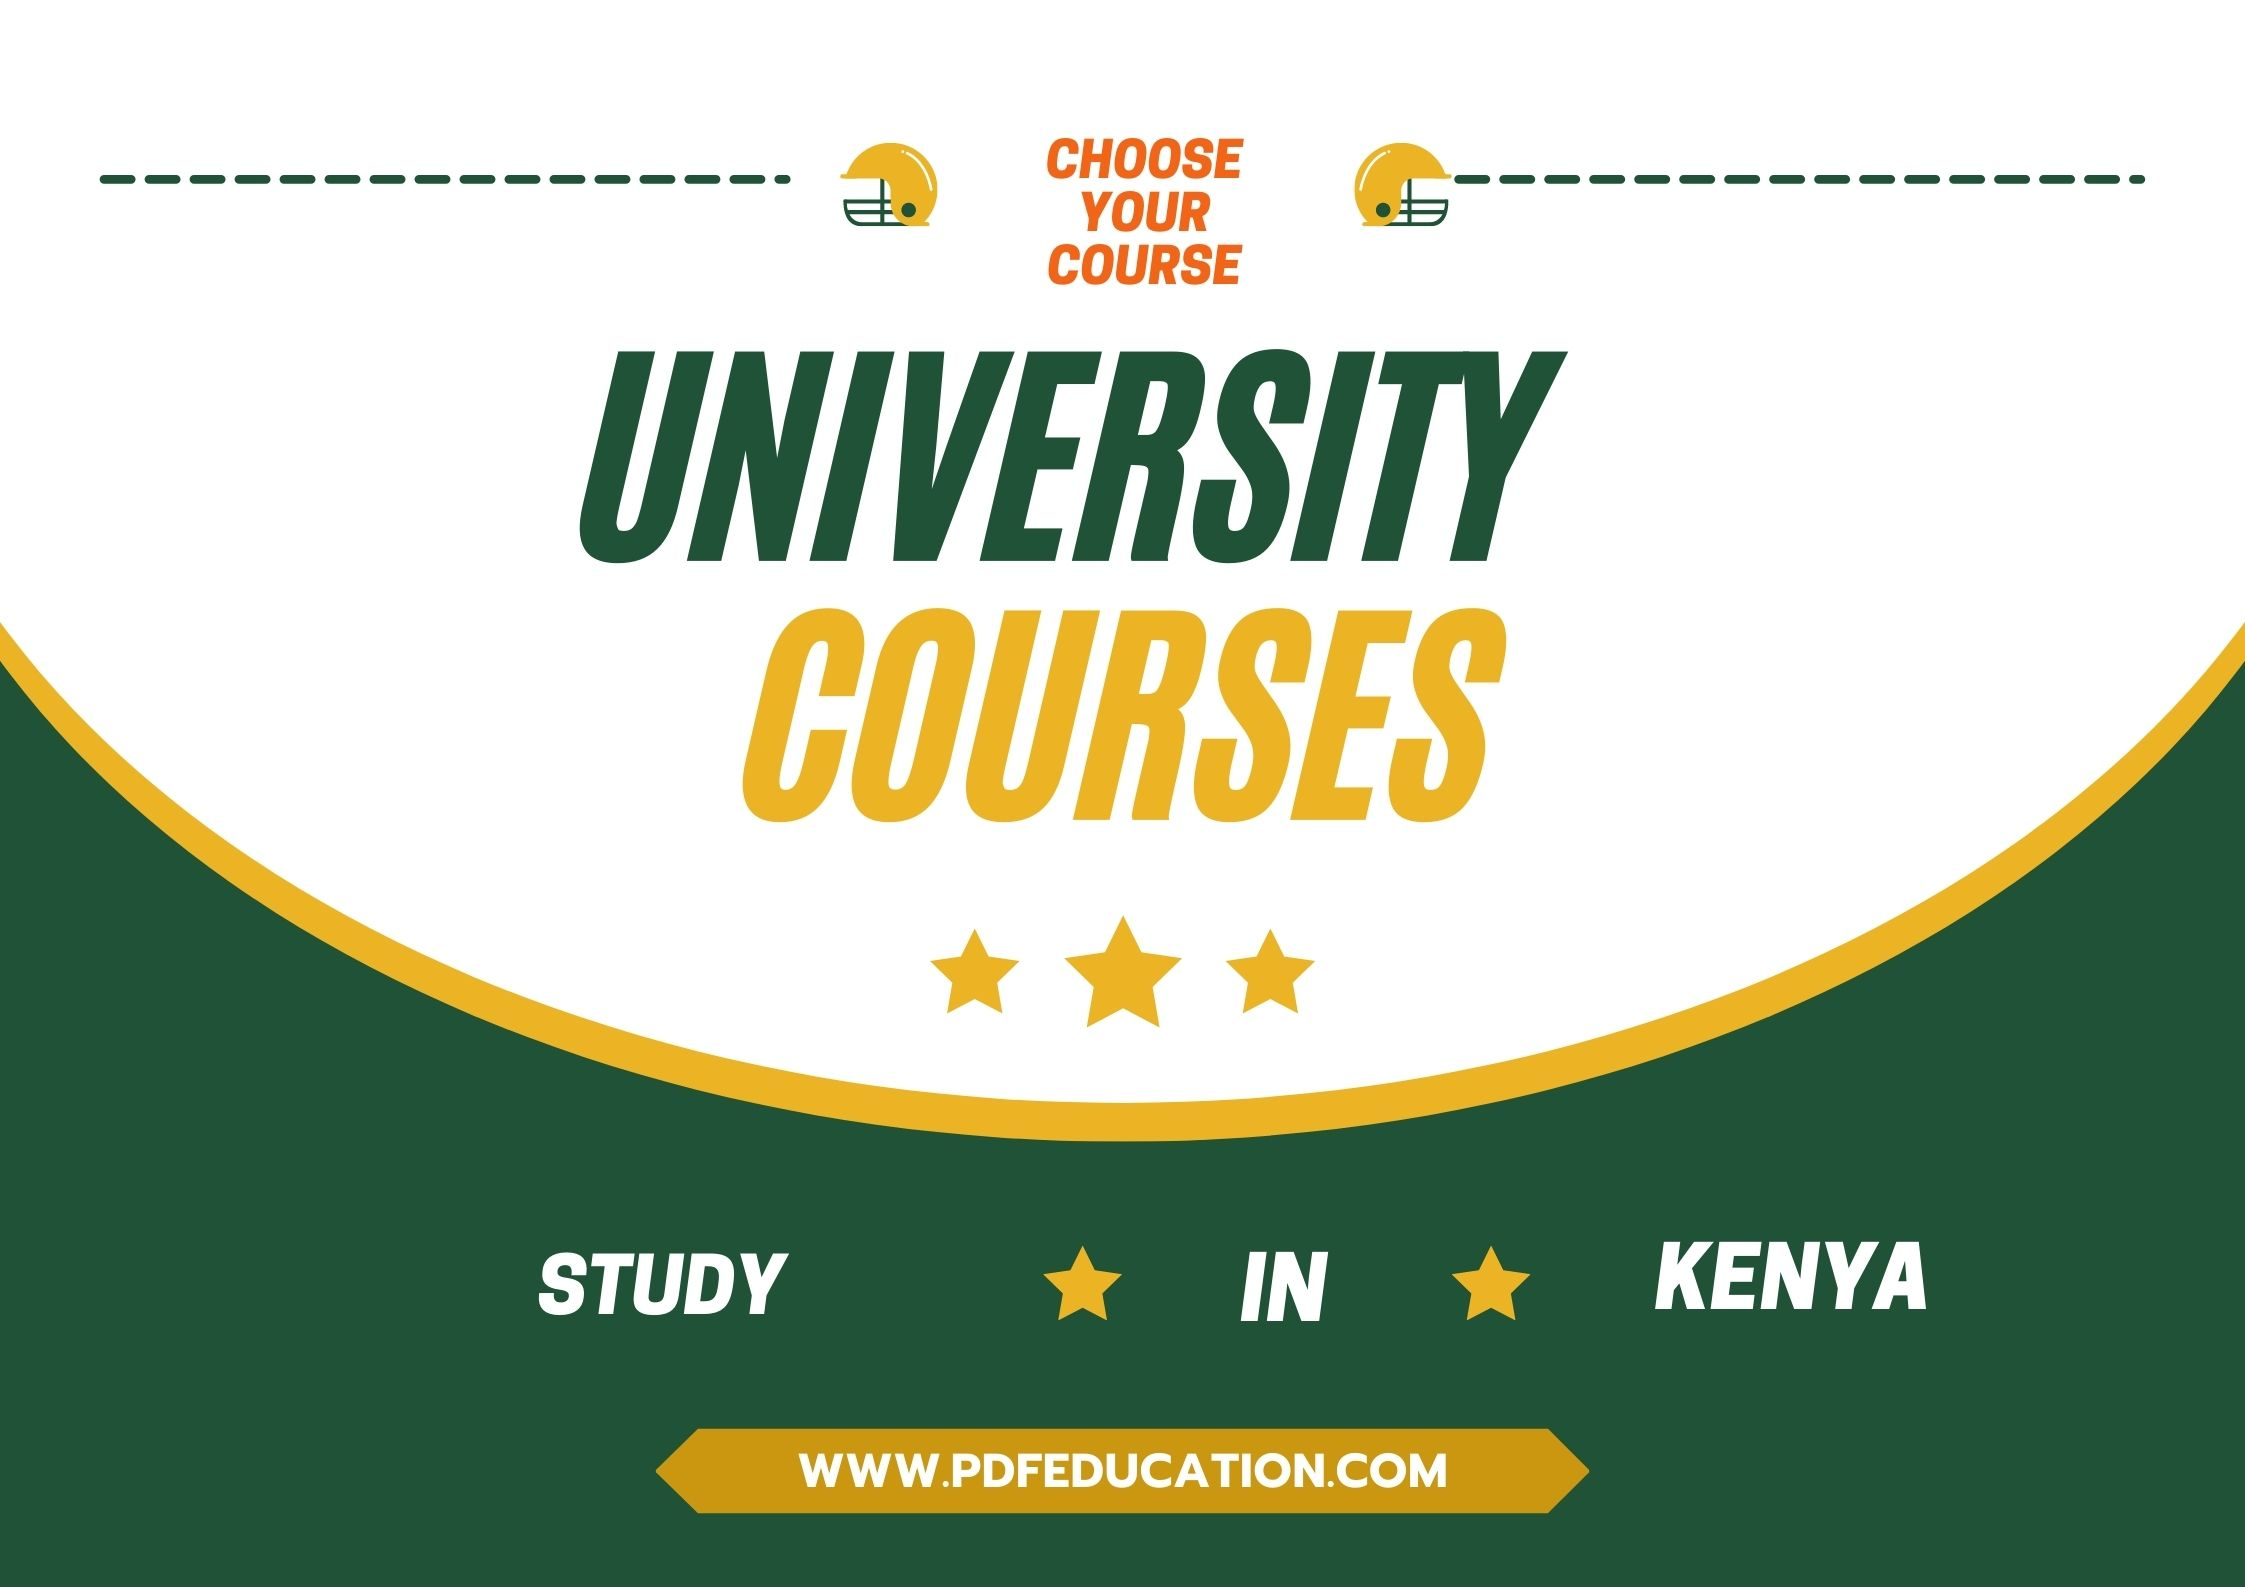 choose a course in Kenya